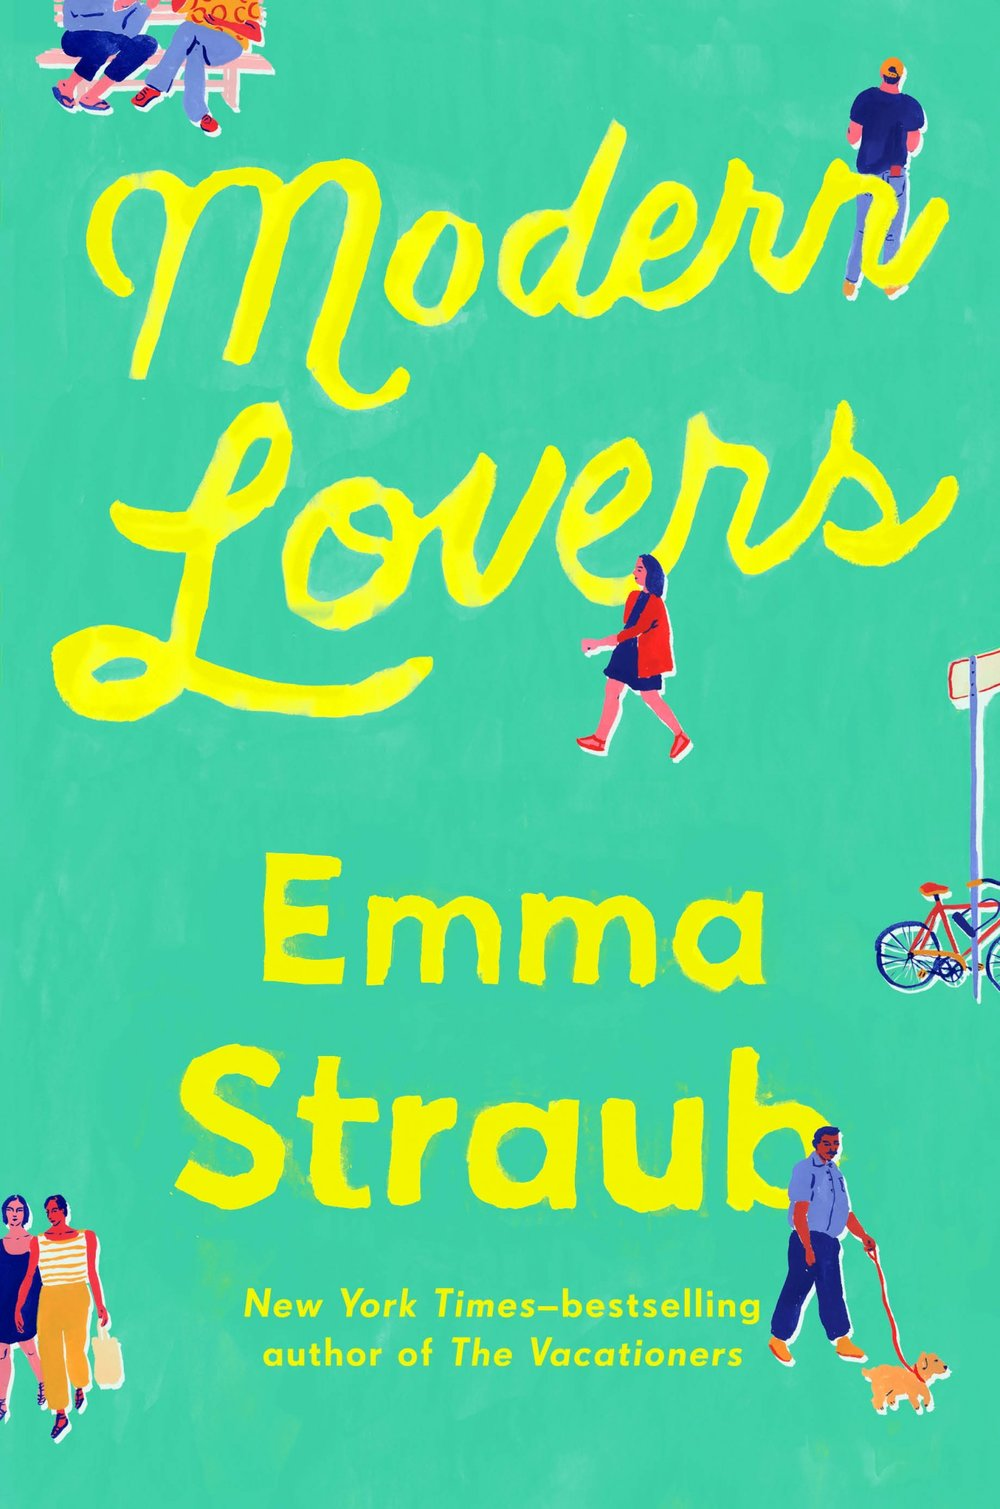 Modern Lovers   by Emma Straub   An interesting novel on changing relationships, friends after college, and growing older.